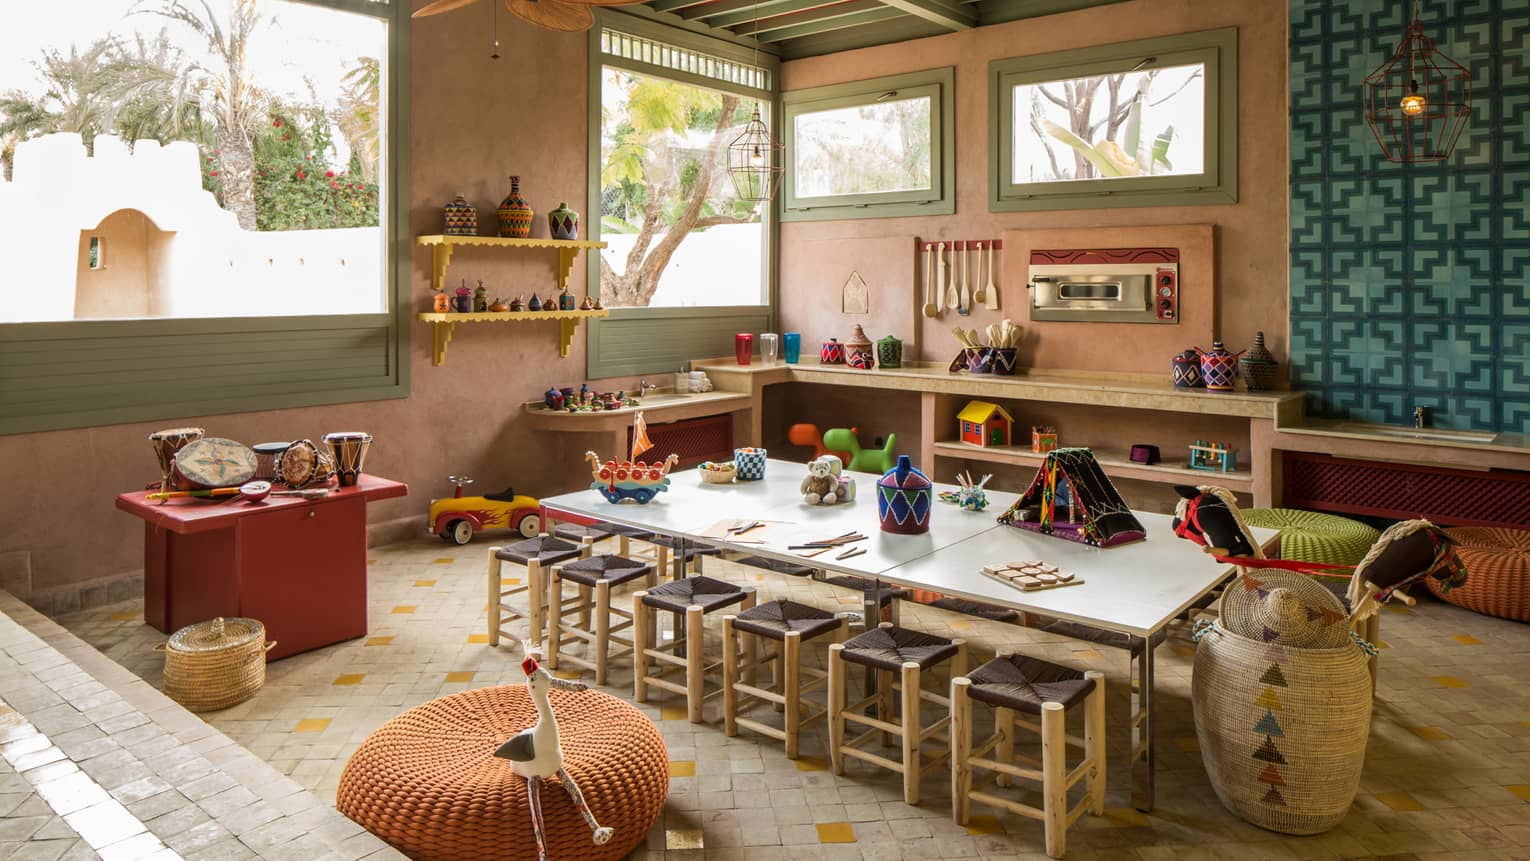 Kids Club long craft table with stools, toys on shelves along wall under sunny windows